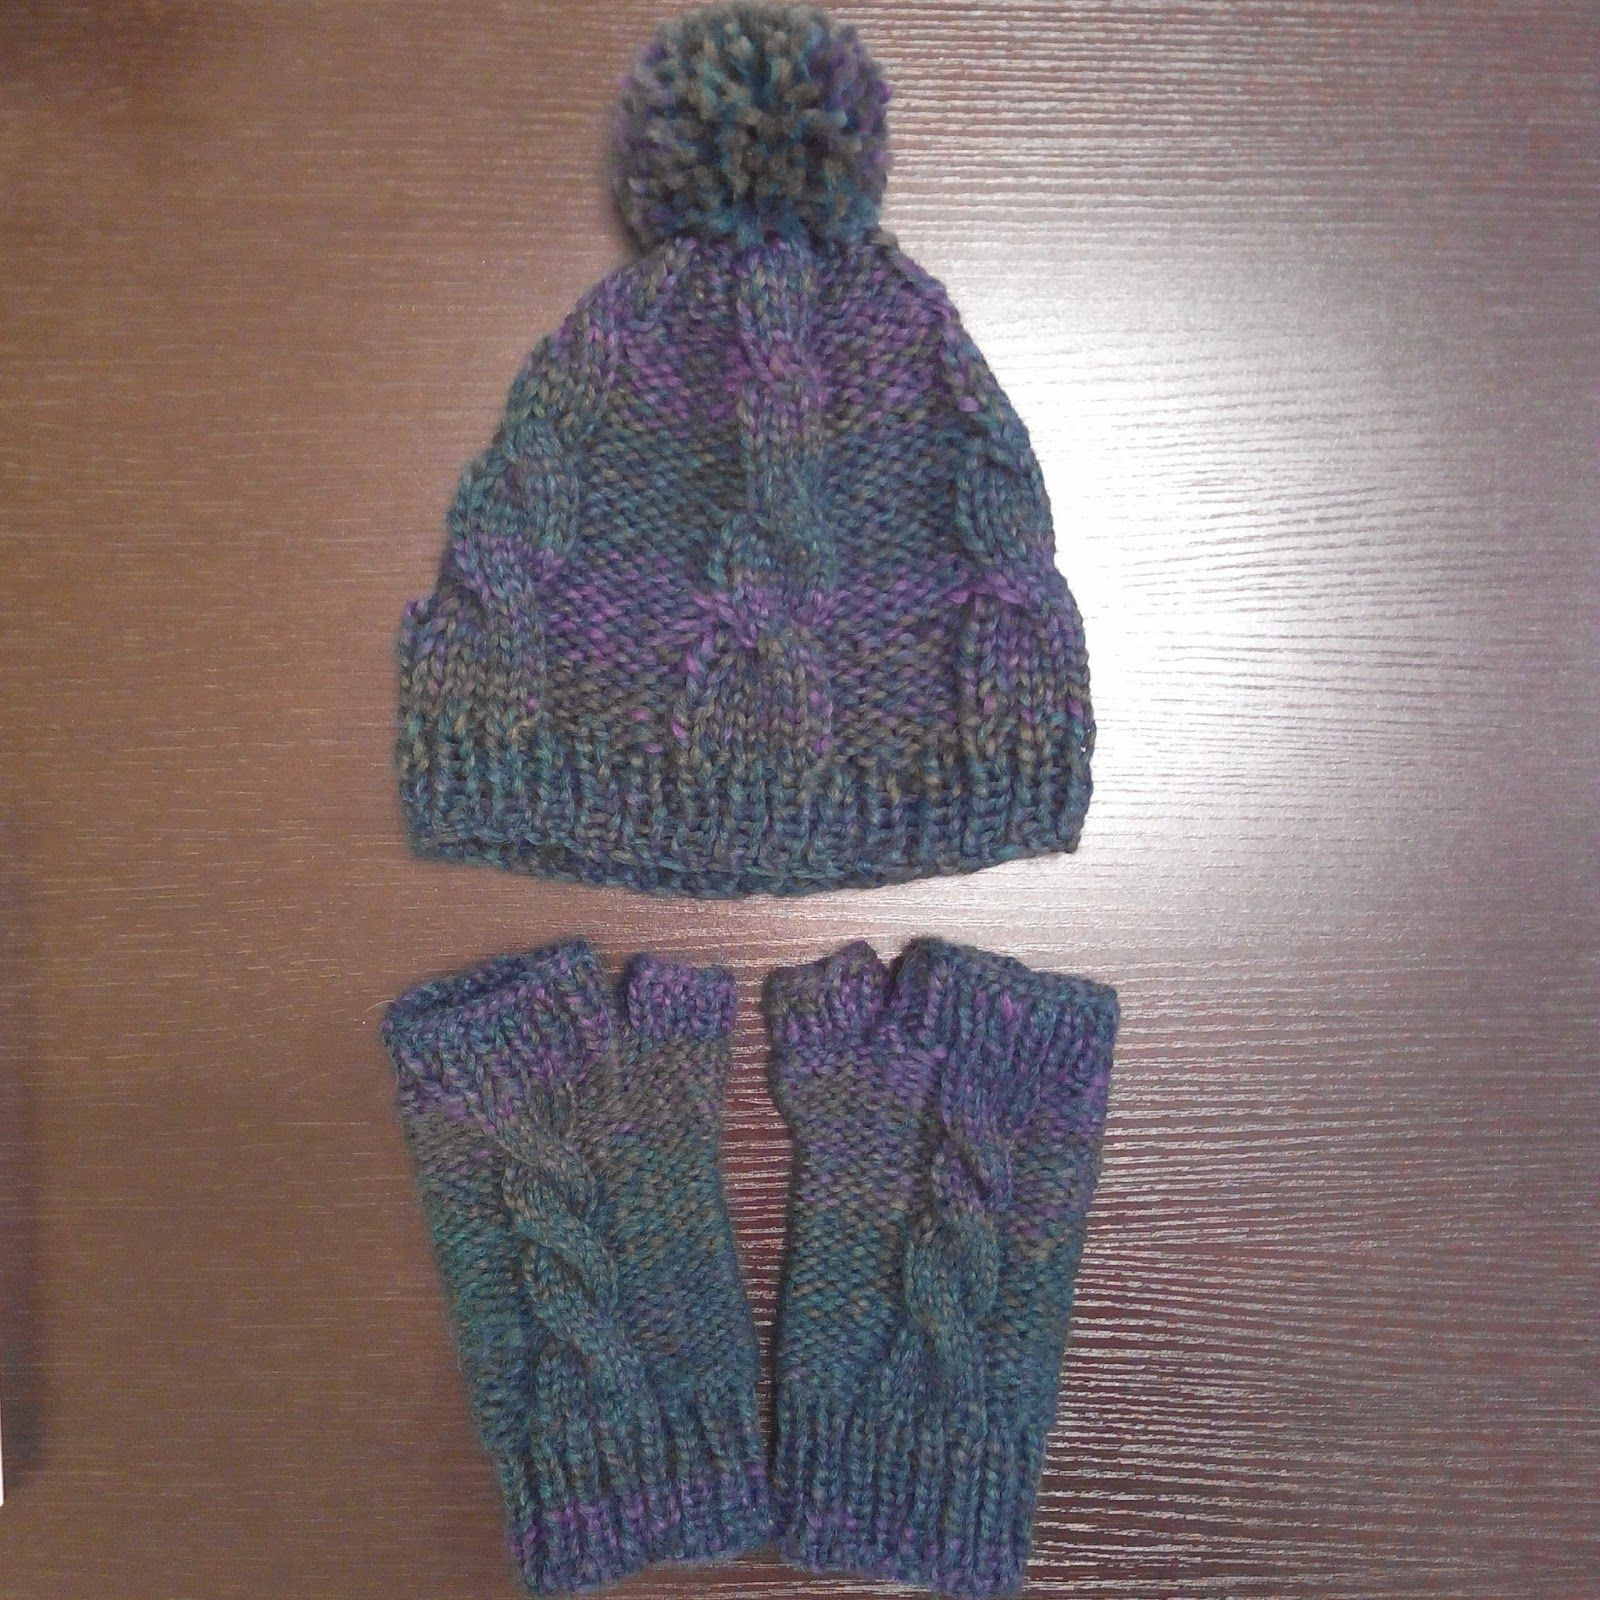 Gorro y mitones con trenzas a dos agujas Knitted hat and mittens Fall Crafts Project  www.fallcraftsproject.com